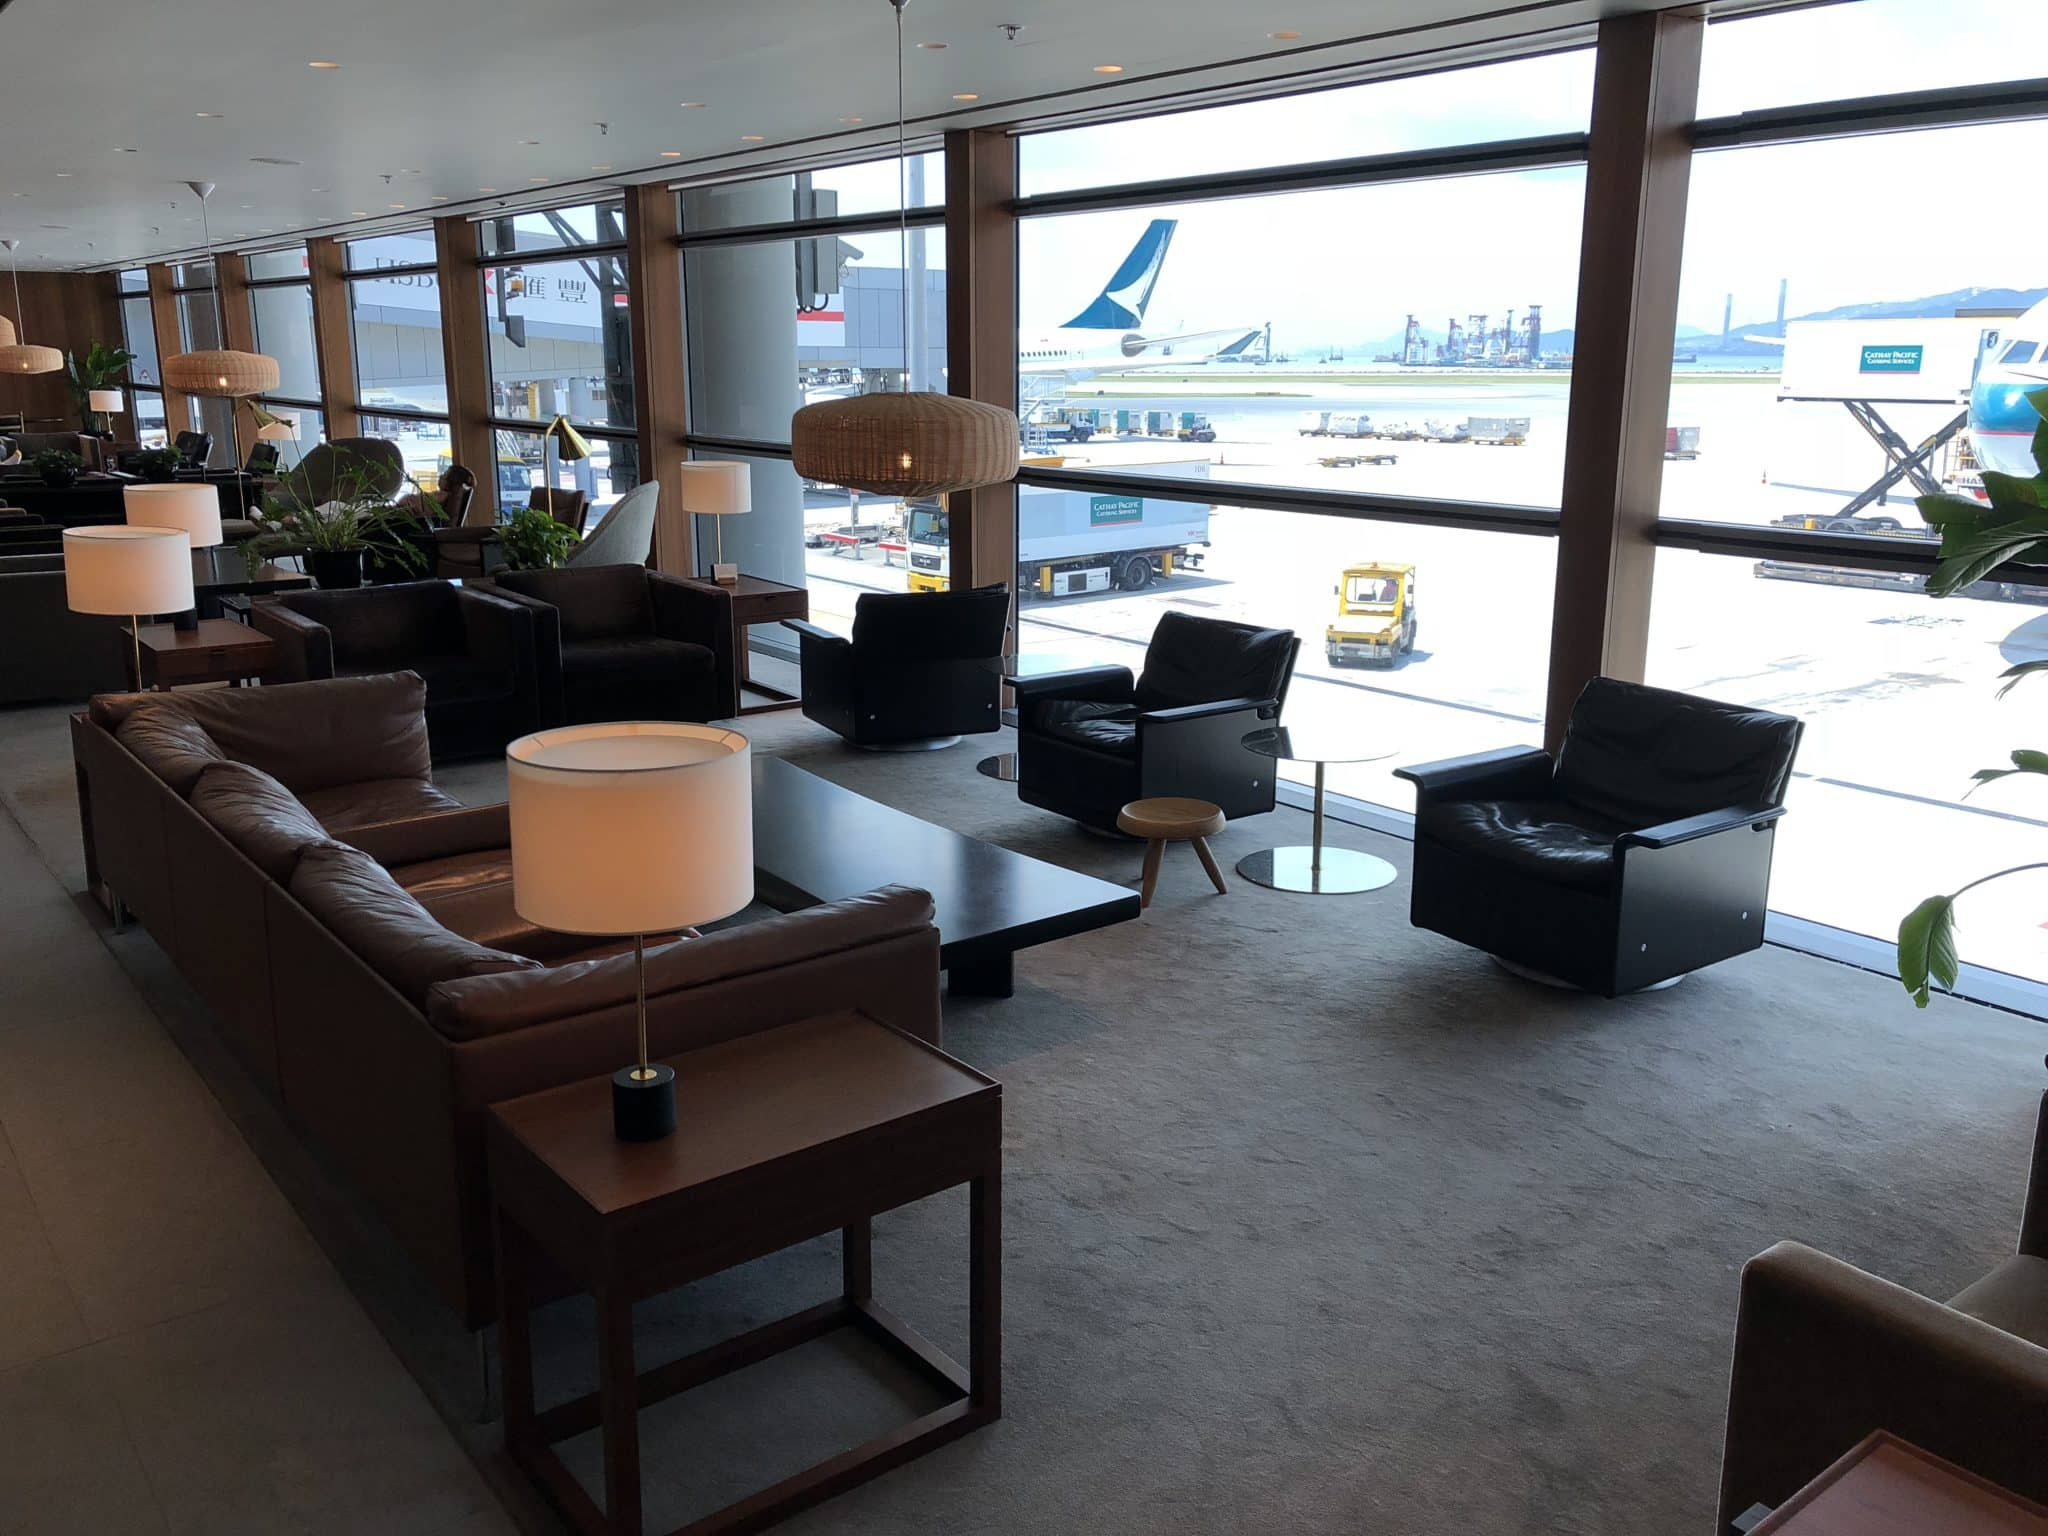 Cathay Pacific Business Class Lounge The Pier Sitzbereich Fensterfront